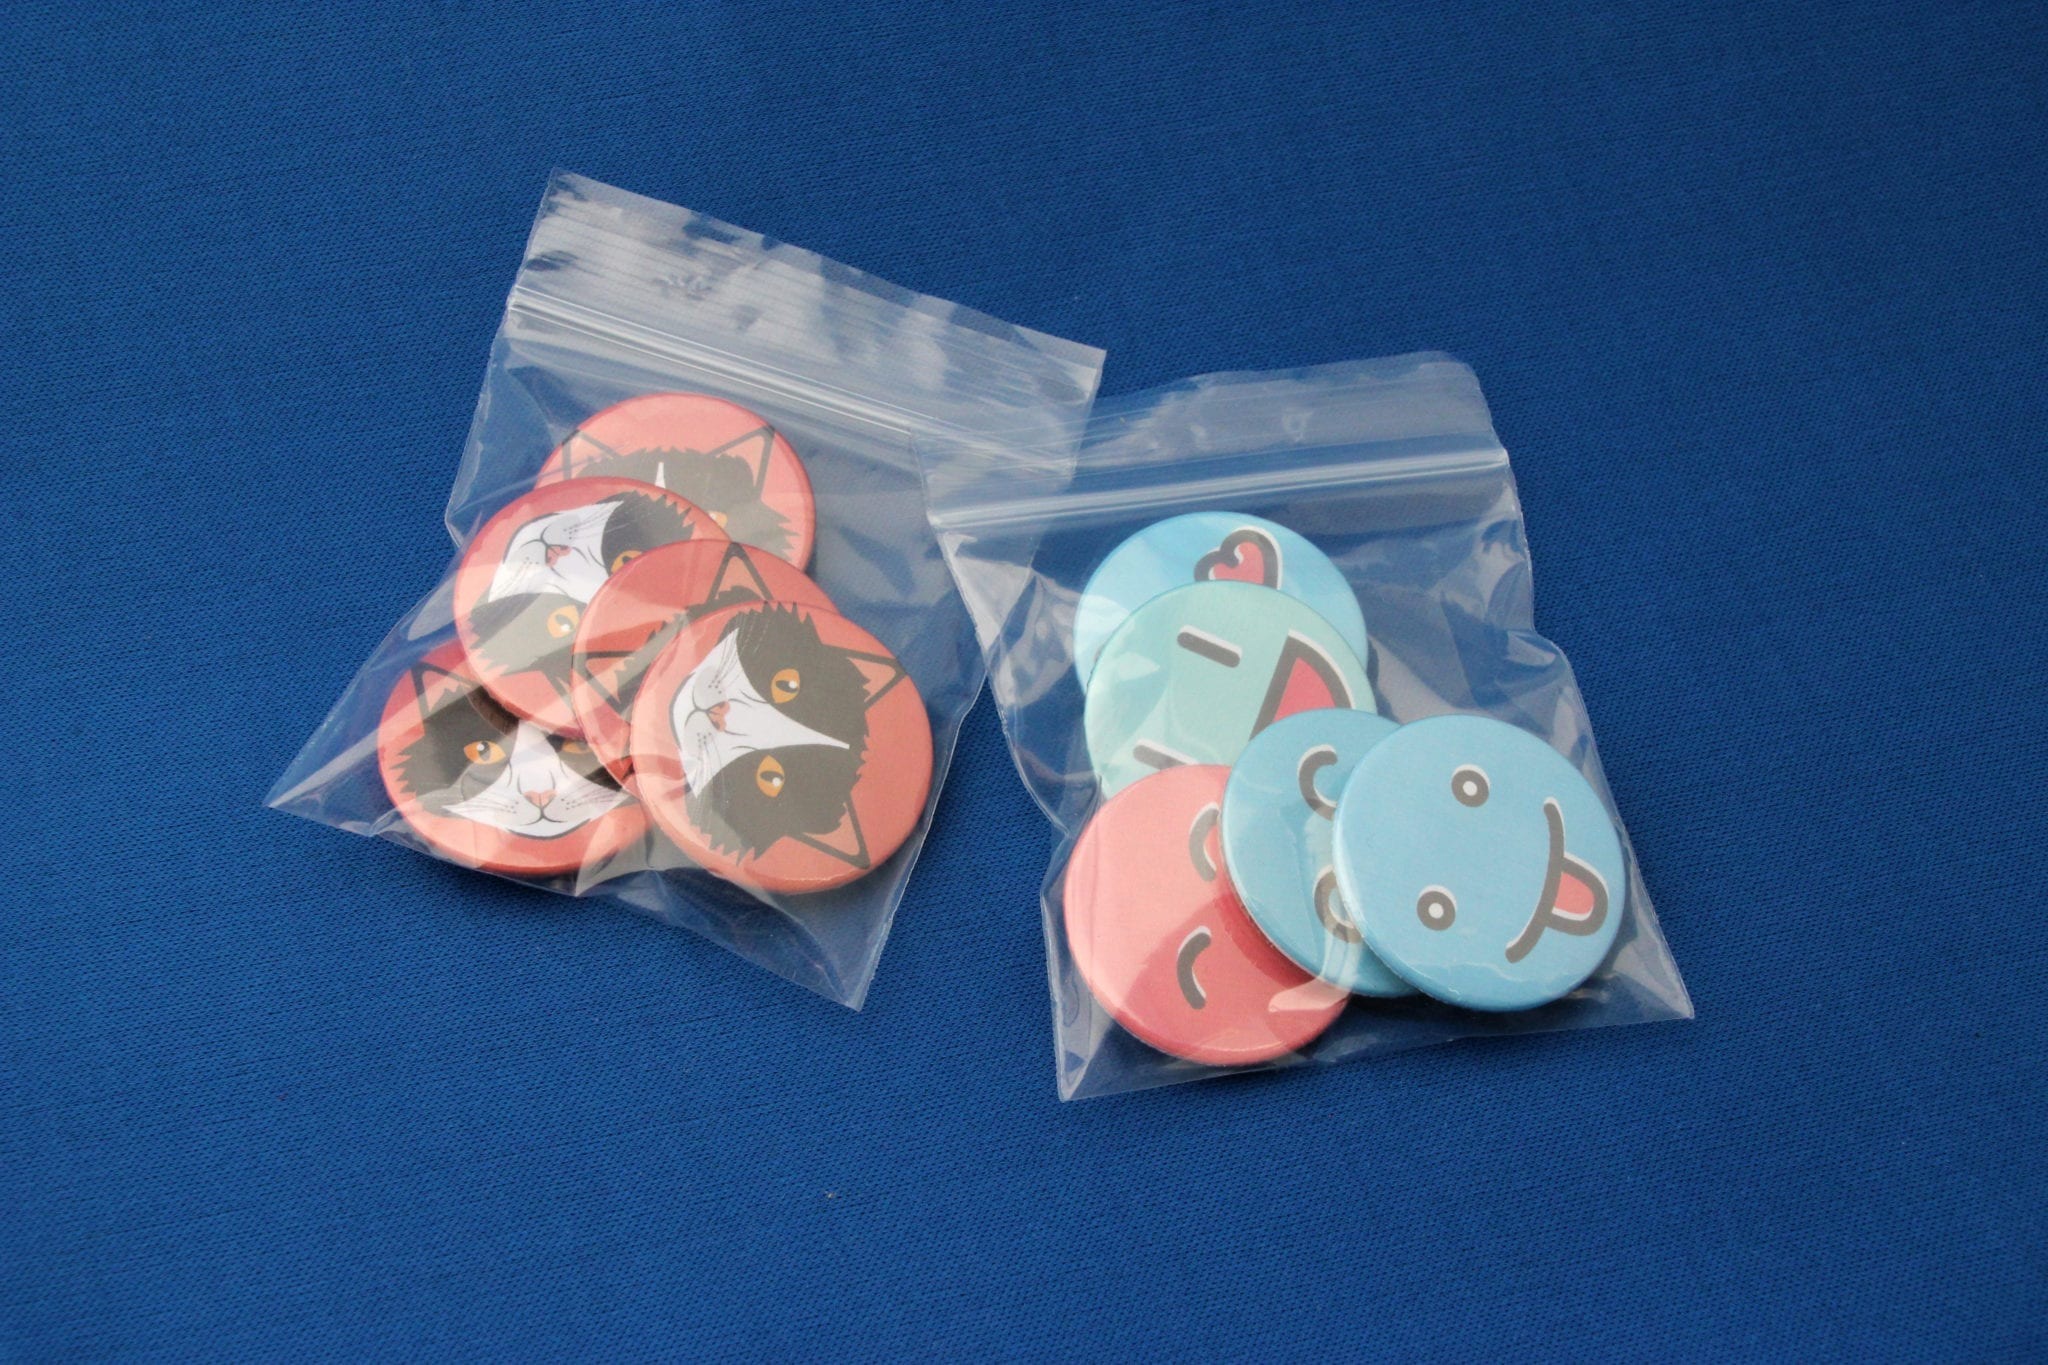 badges-magnets-are-great-for-giveaways-or-create-unique-designs-to-sell-to-customers.jpg